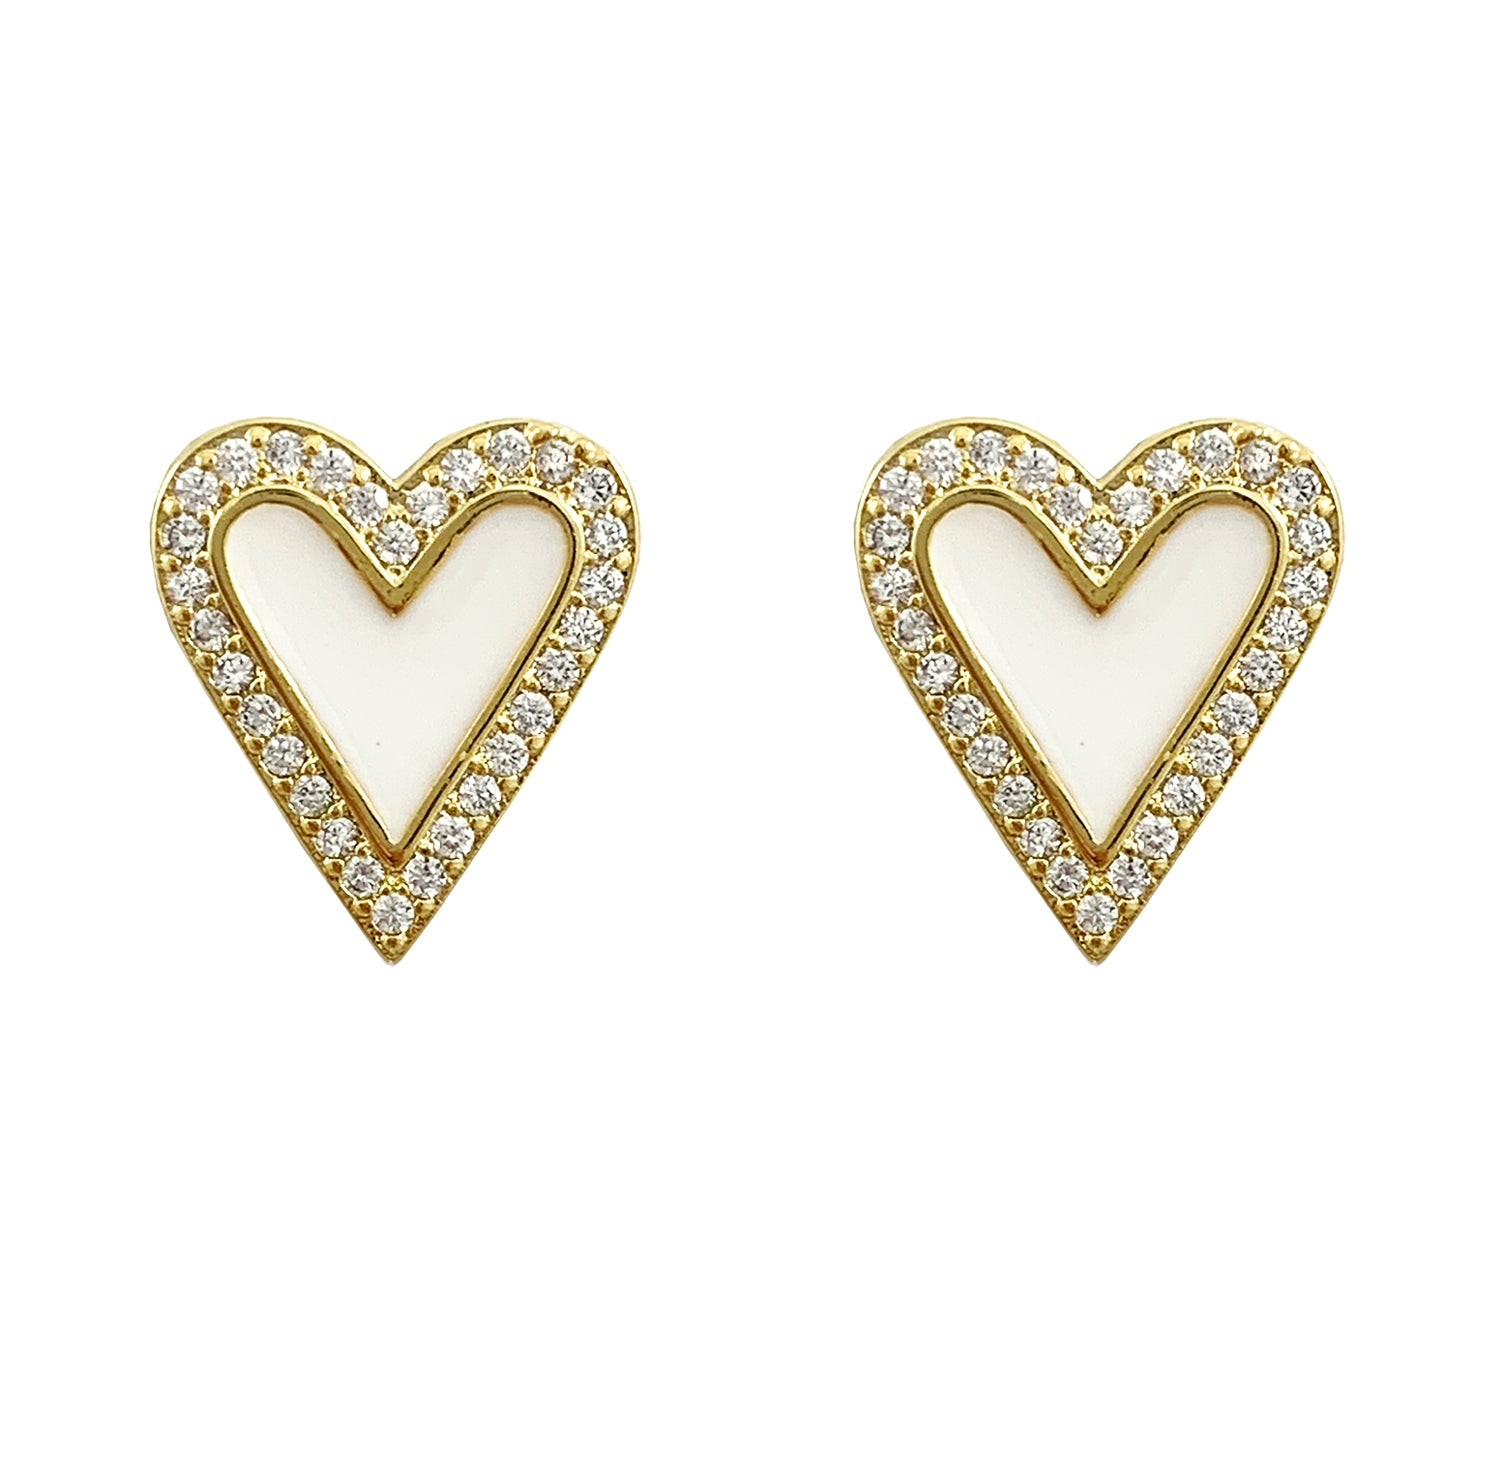 Davina earrings